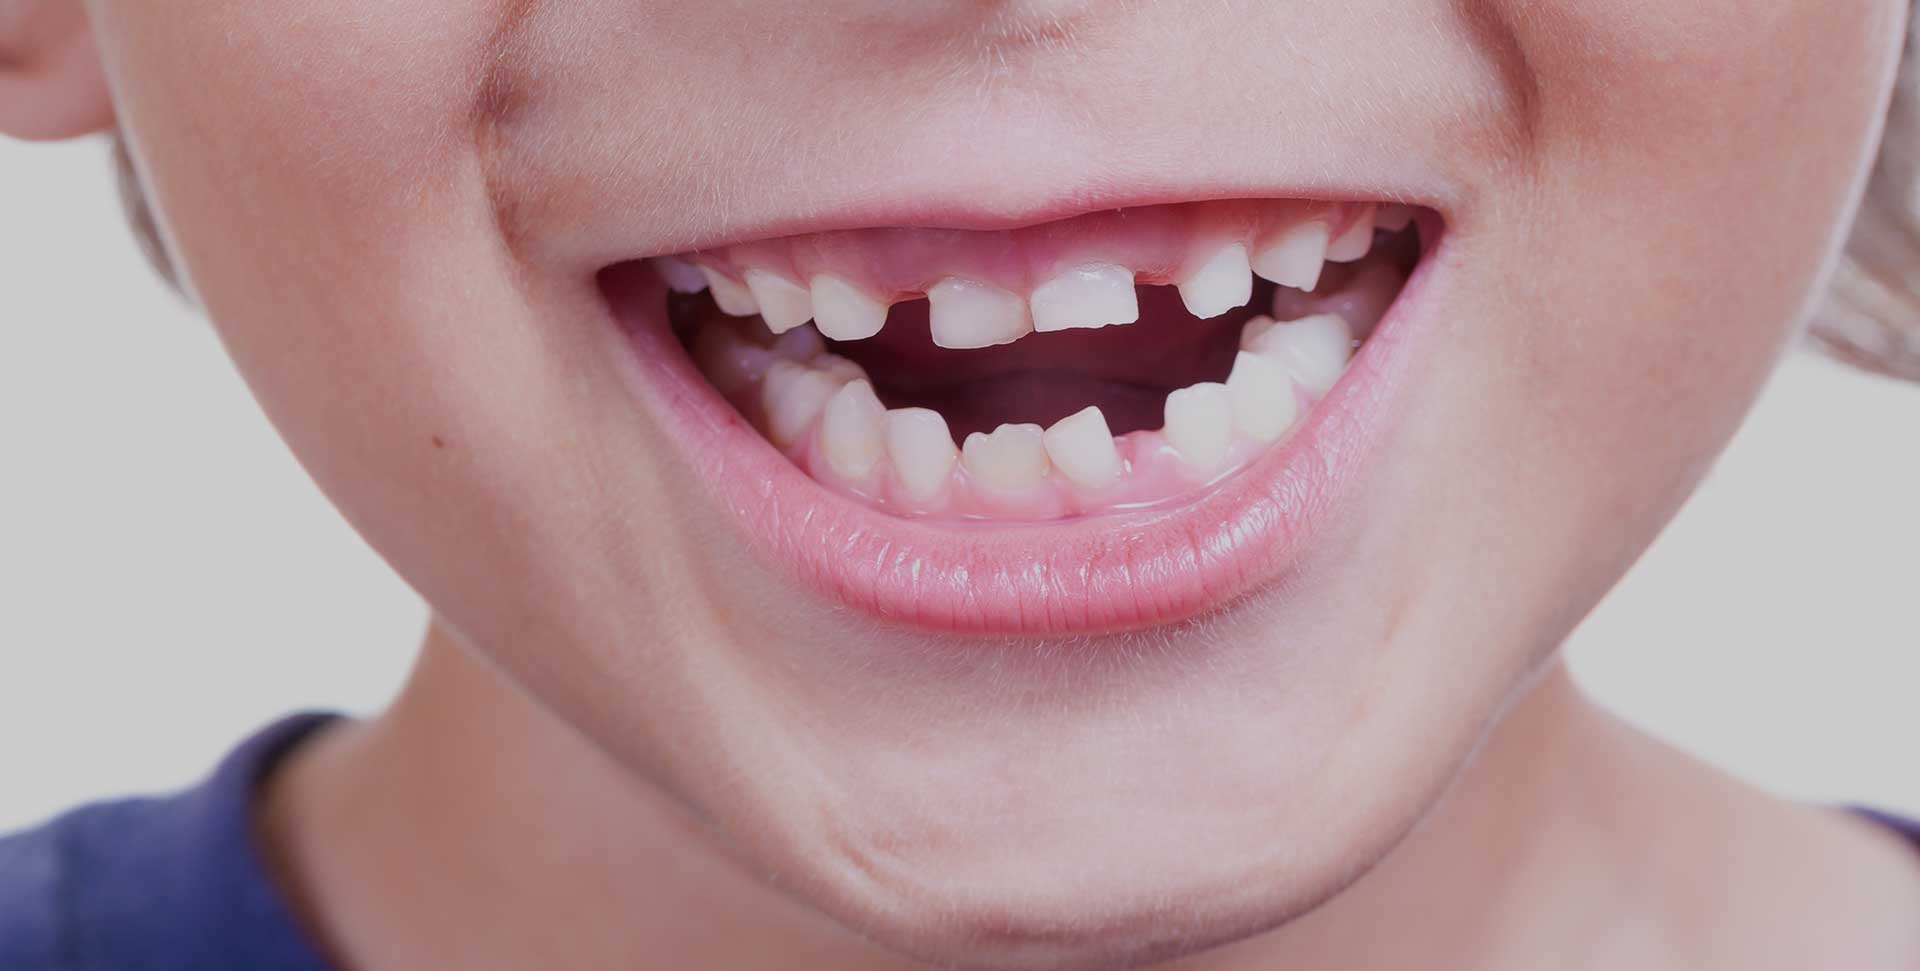 South Calgary Orthodontist | McKenzie Orthodontics | Early Orthodontic Treatment